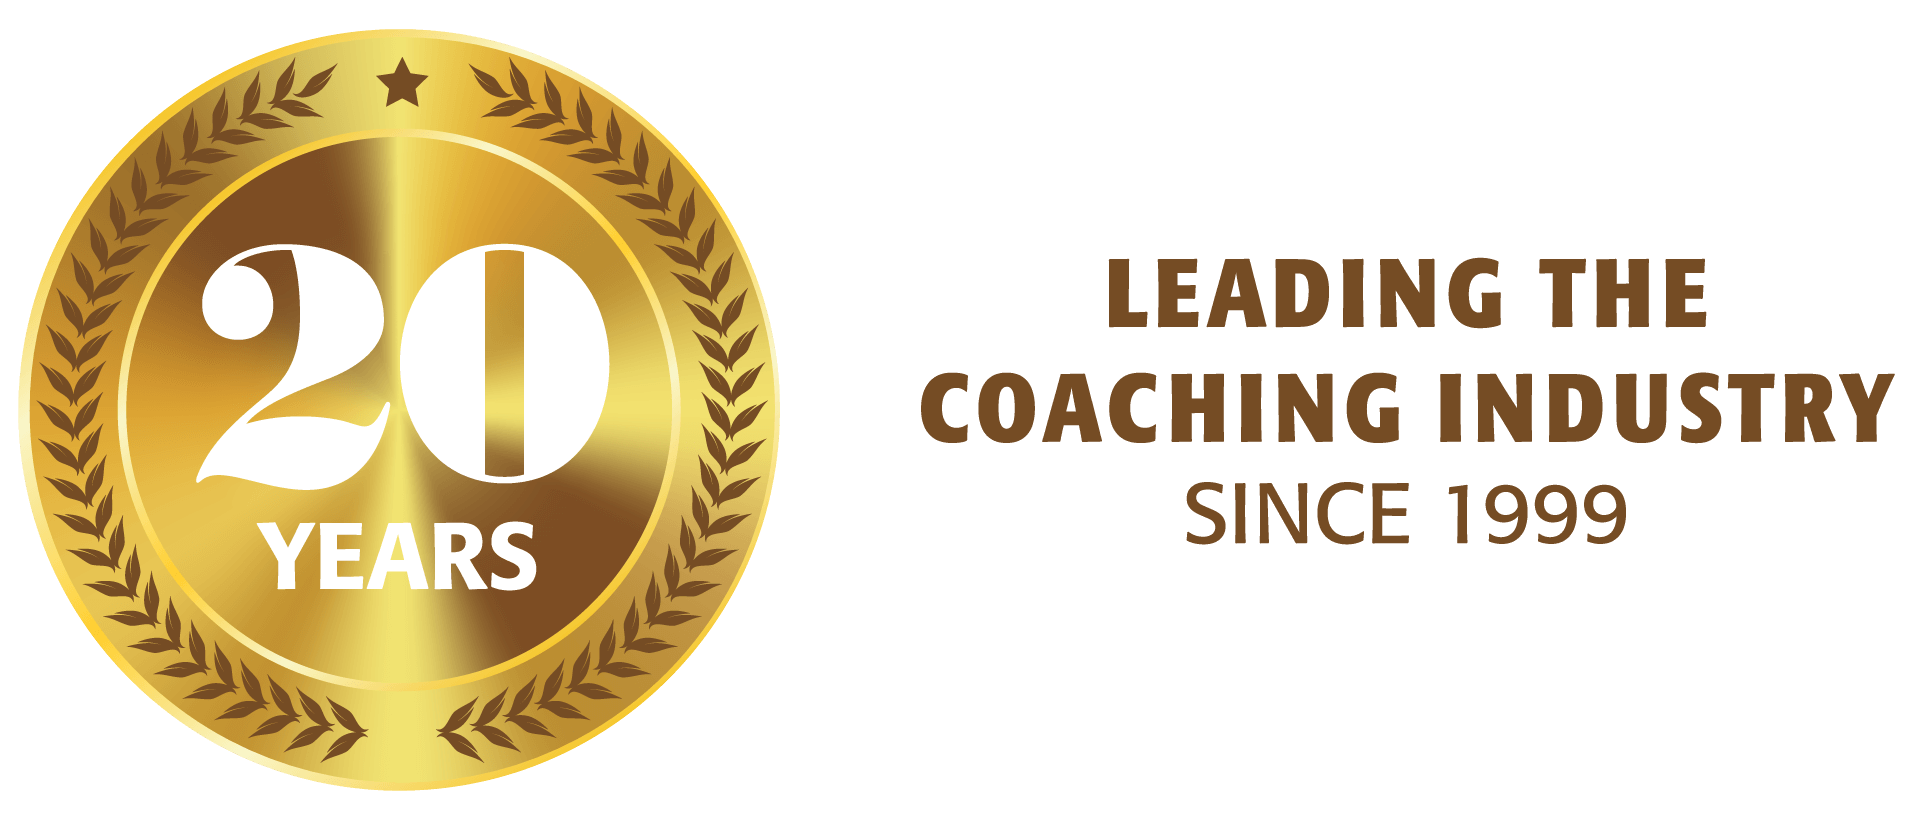 Leading the coaching industry for 20 years image